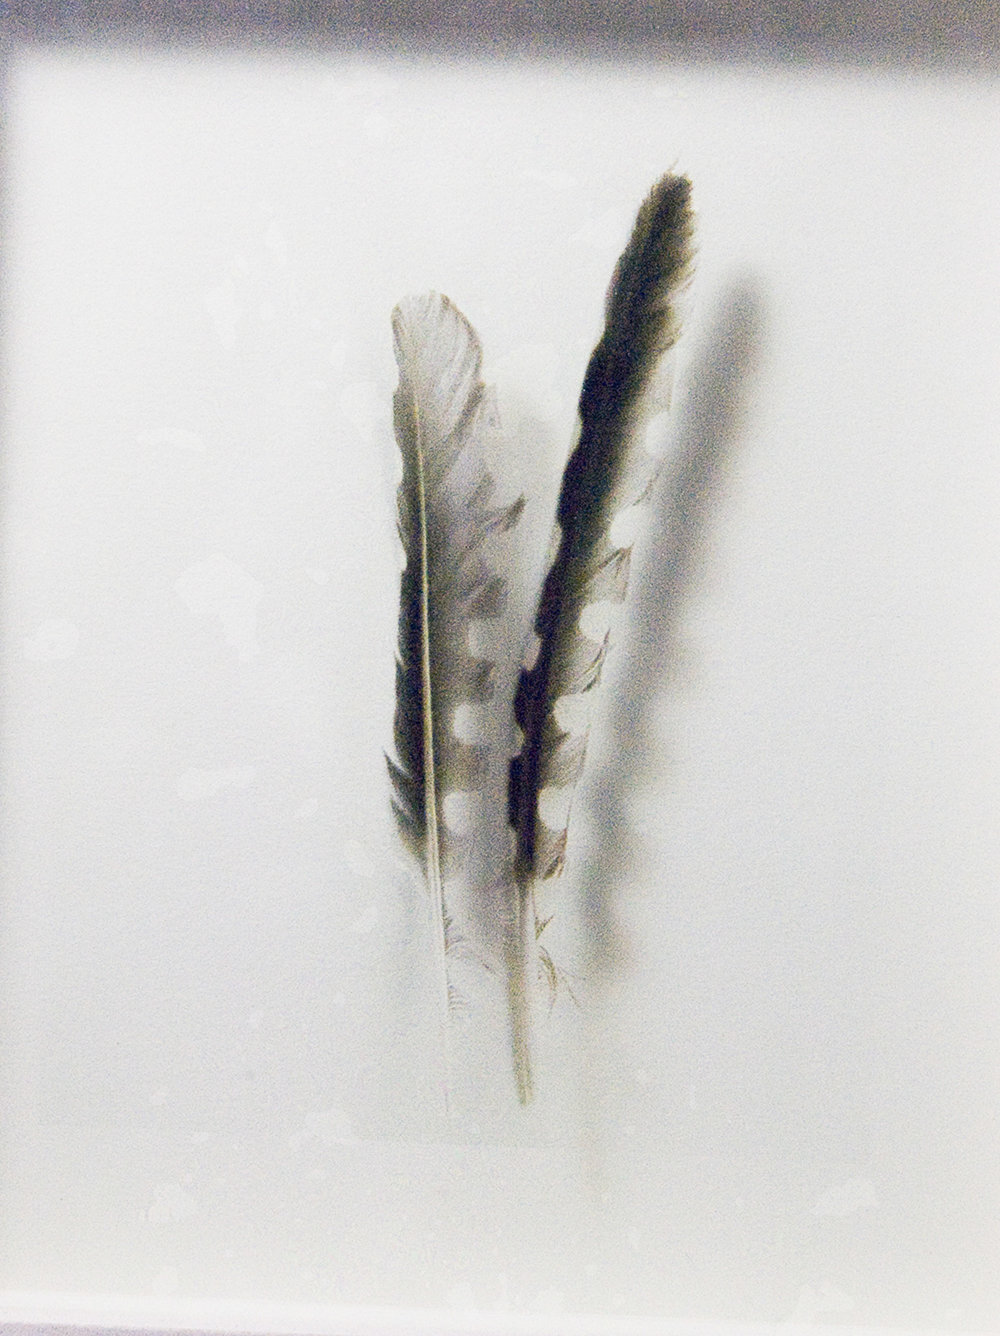 Icarus  , detail -feathers, Ink Jet print on acetate, 3 x 5 inches, 2004